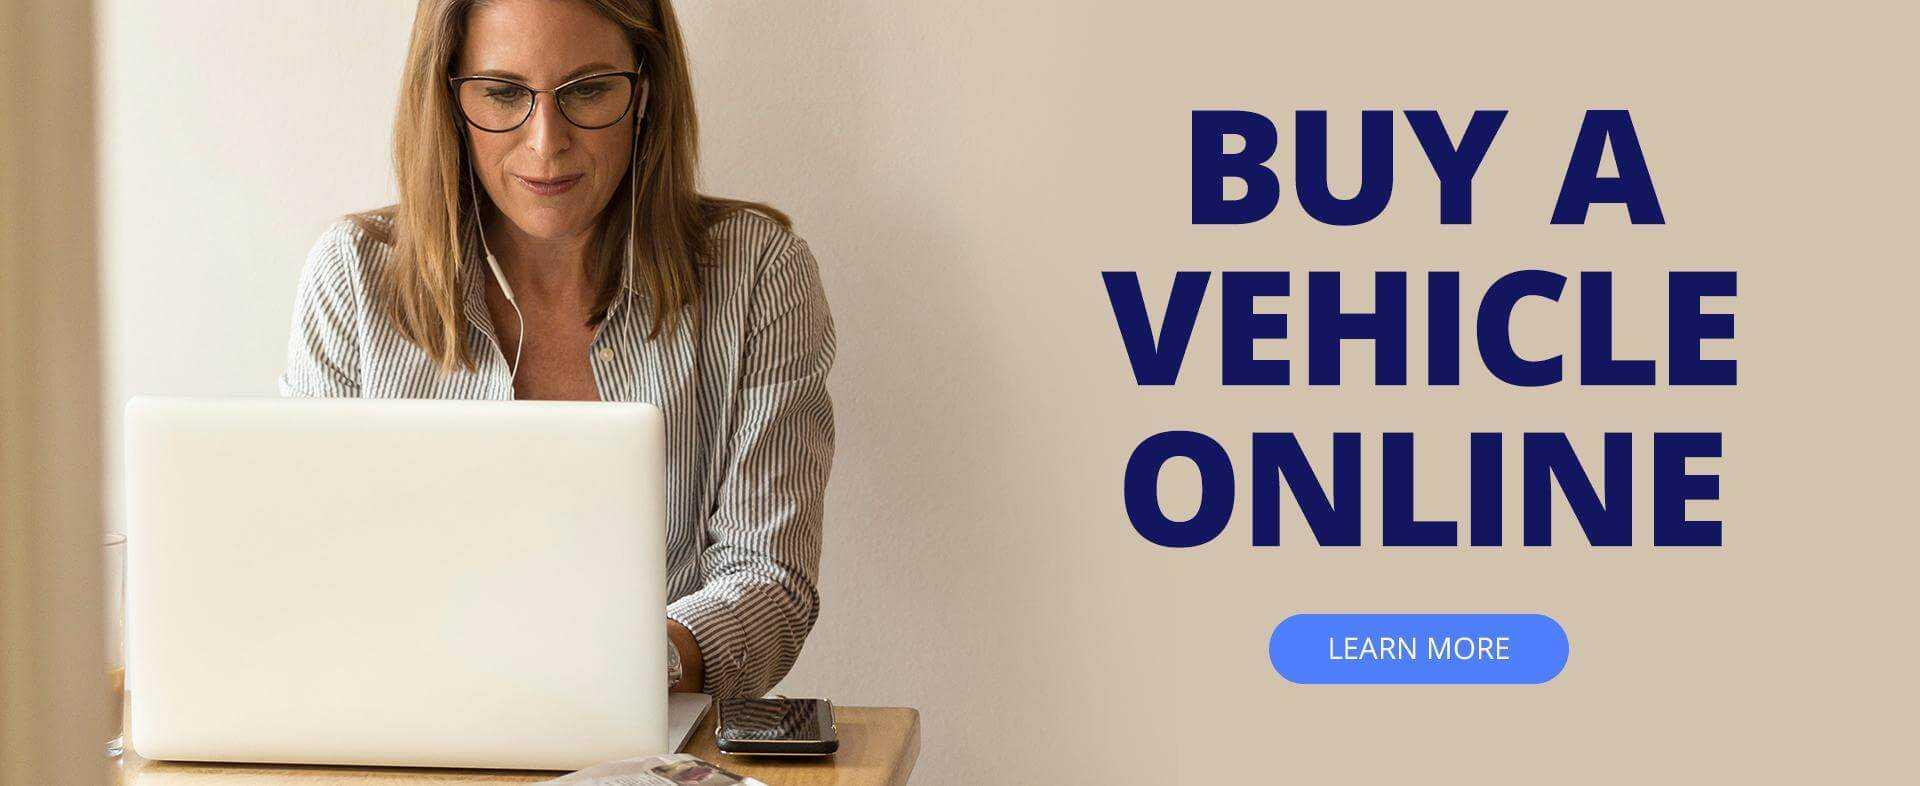 Buy a Vehicle Online